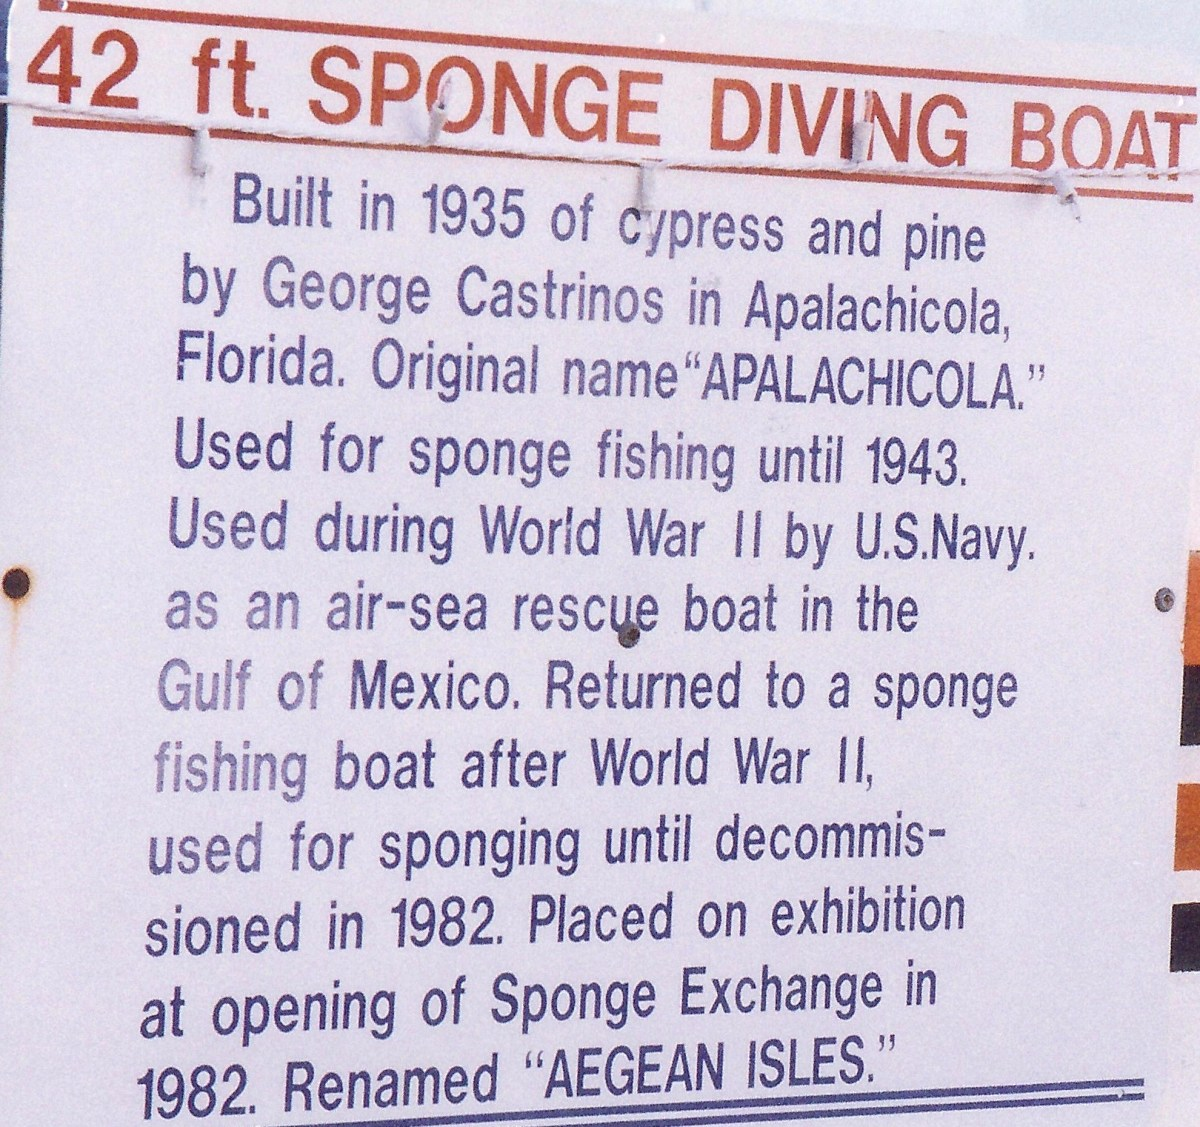 Well known sponge diving boat from that area in Tarpon Springs